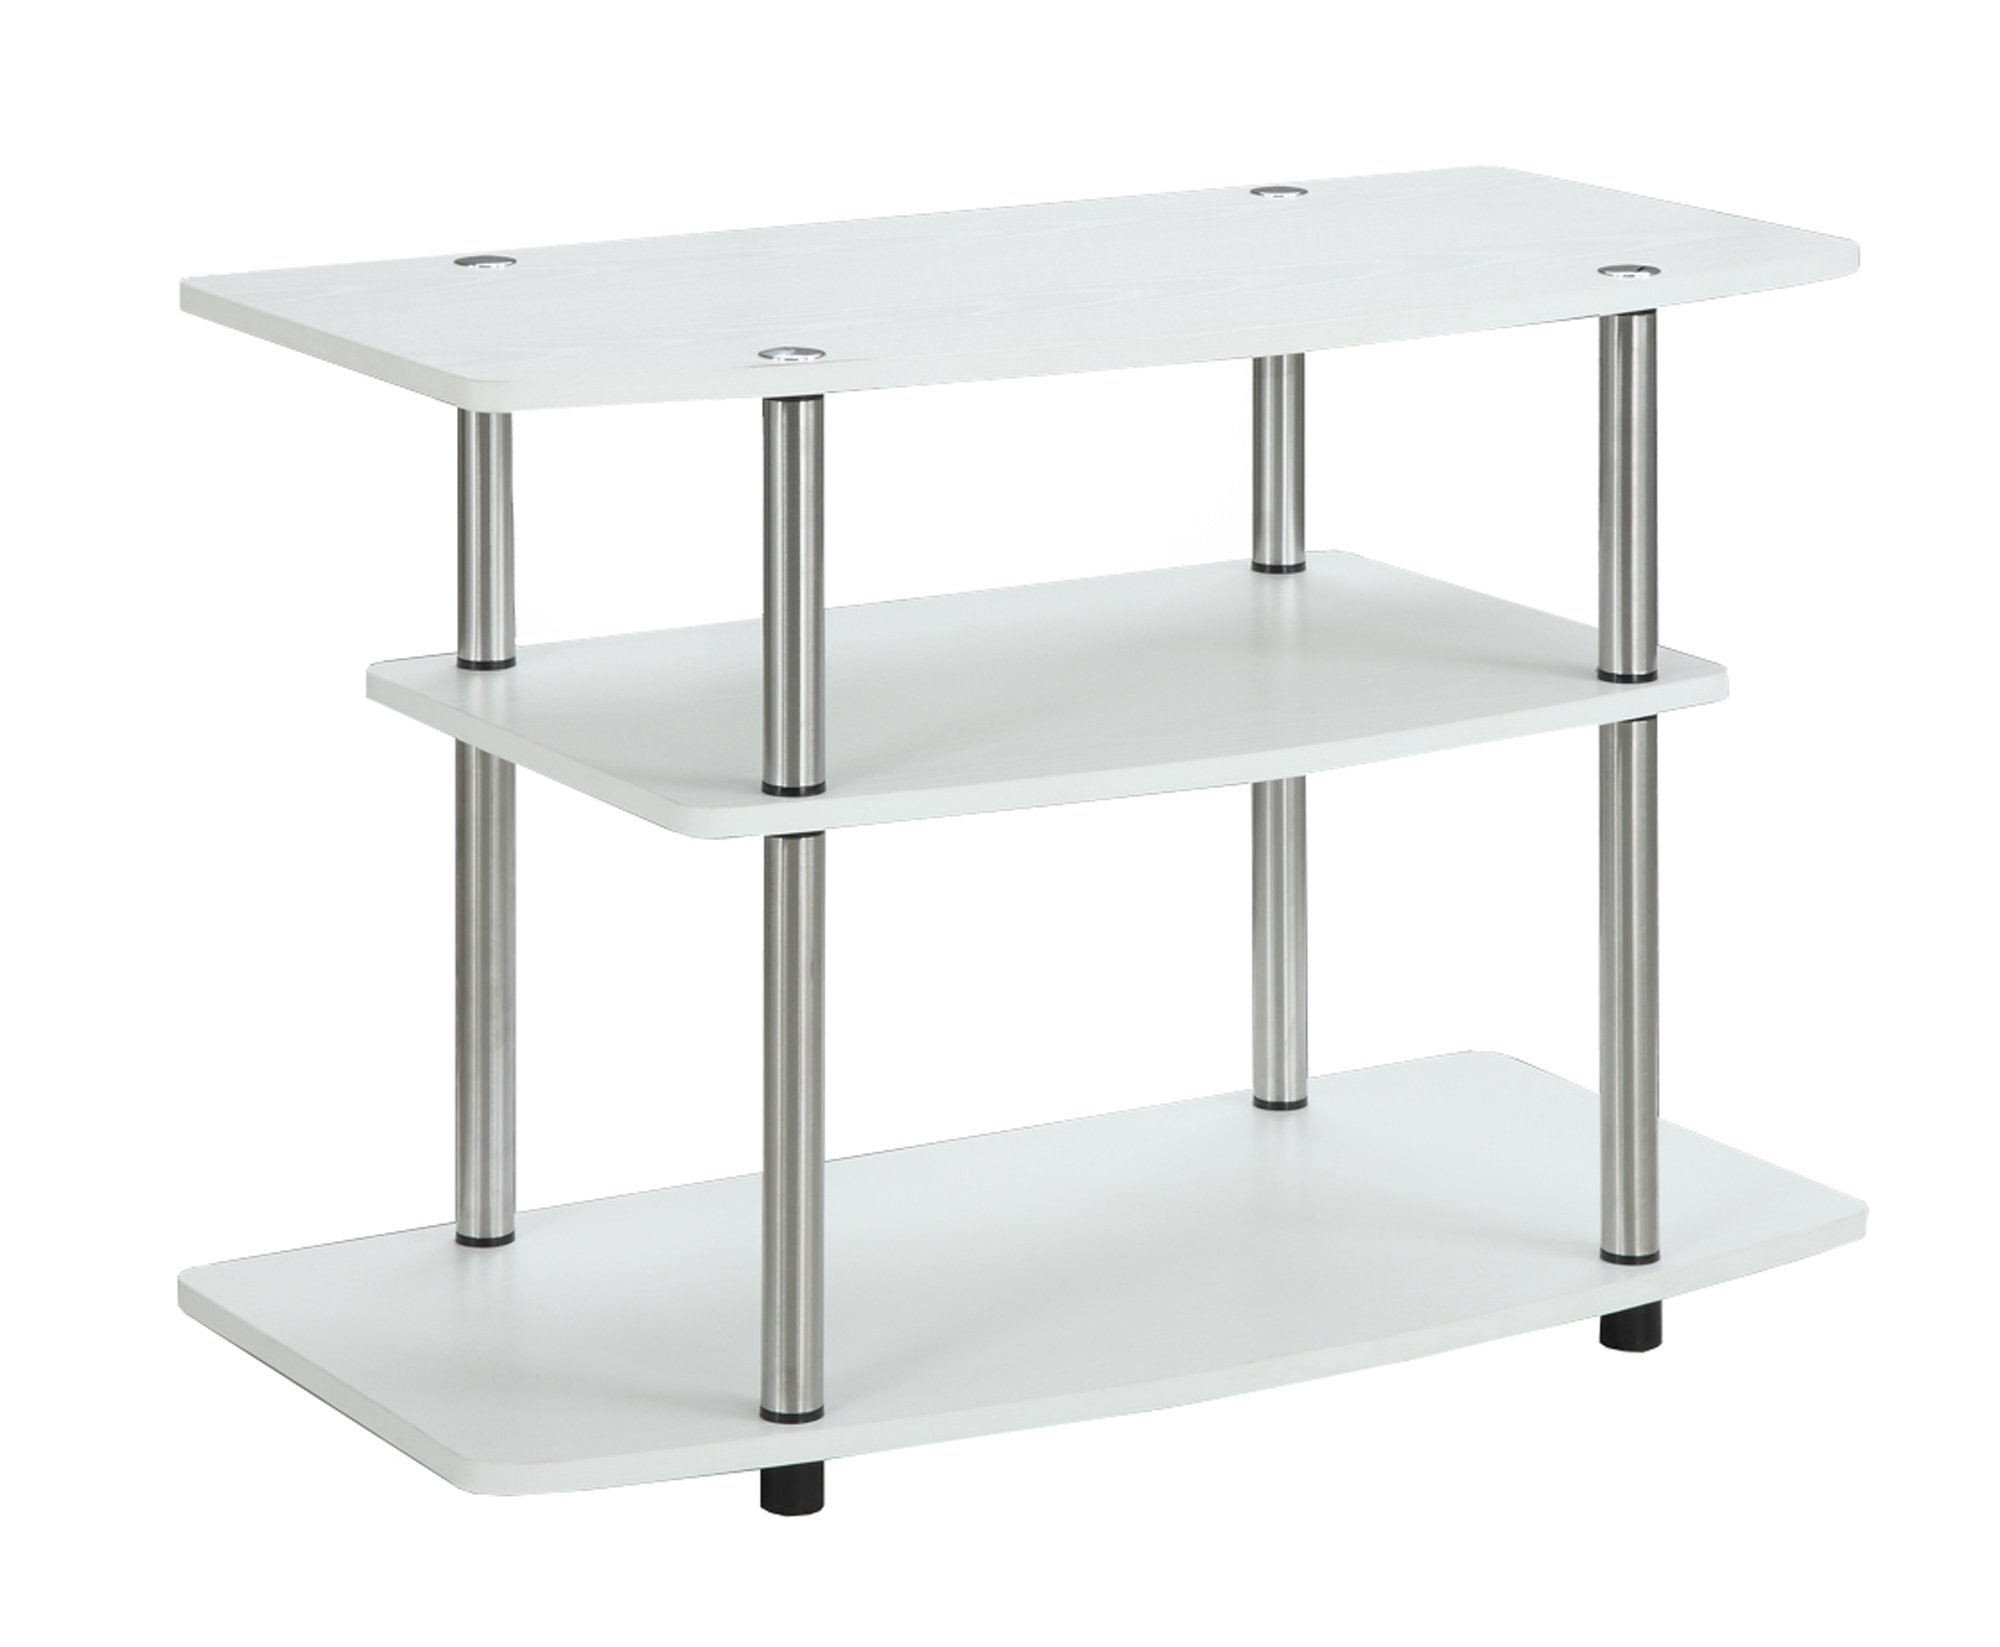 Convenience Concepts 3-Tier TV Stand, White by Convenience Concepts